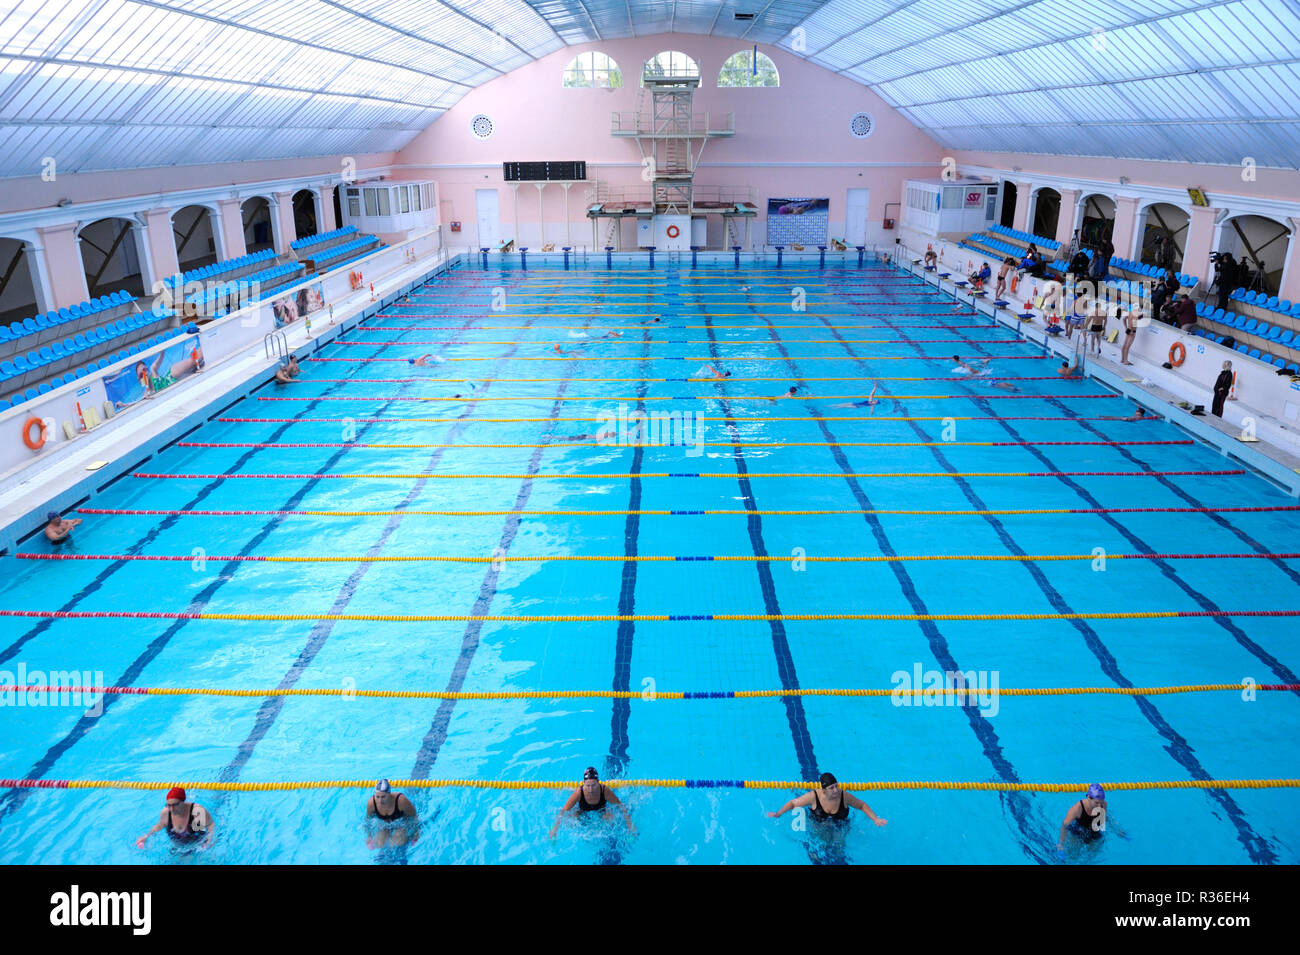 View of indoor swimming pool with people training. Pool of ...